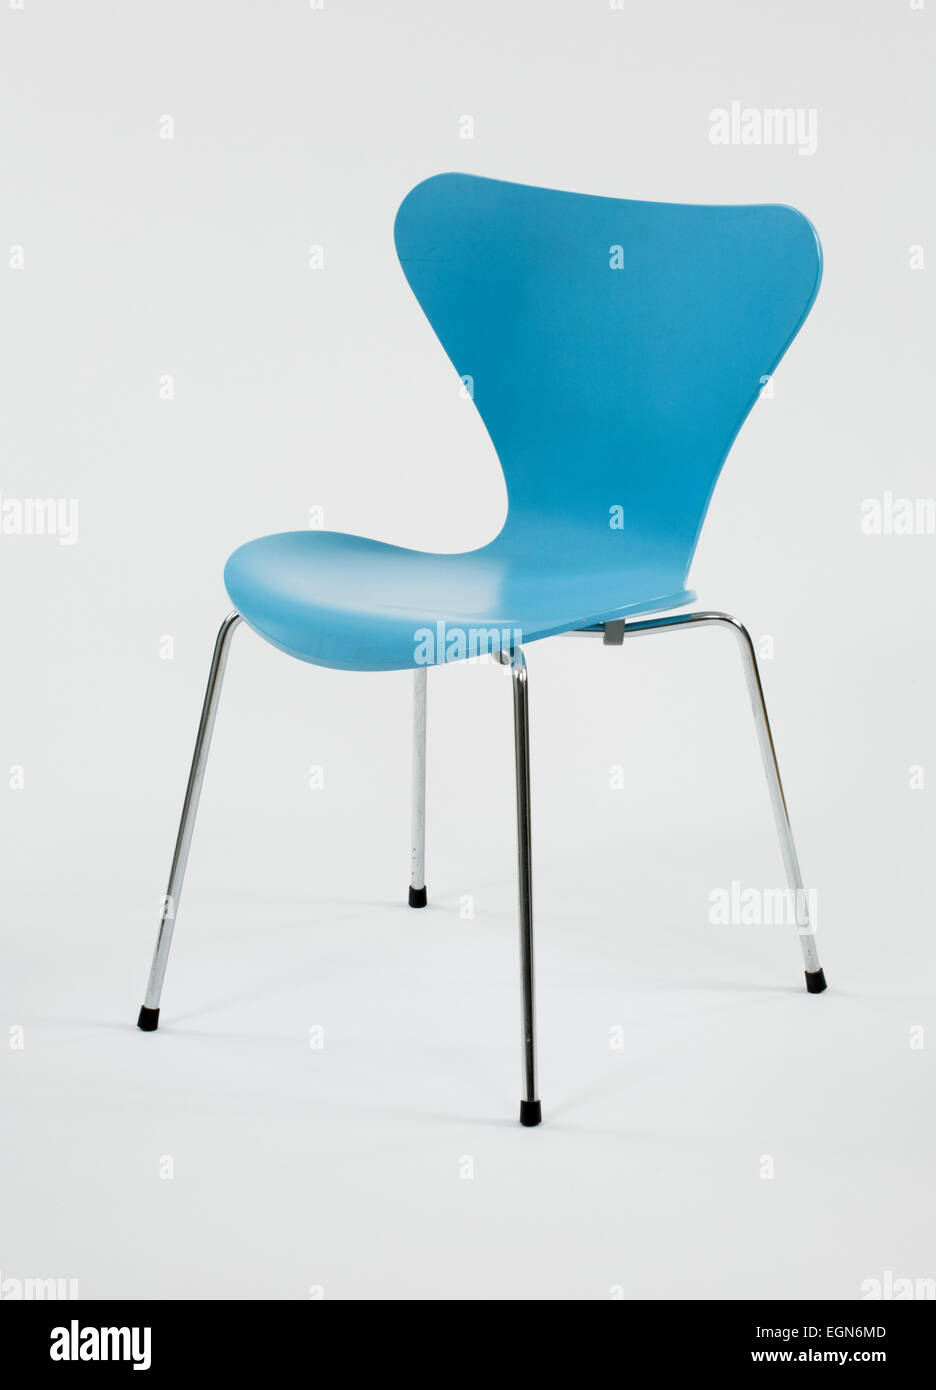 arne jacobsen chair stockfotos arne jacobsen chair bilder alamy. Black Bedroom Furniture Sets. Home Design Ideas